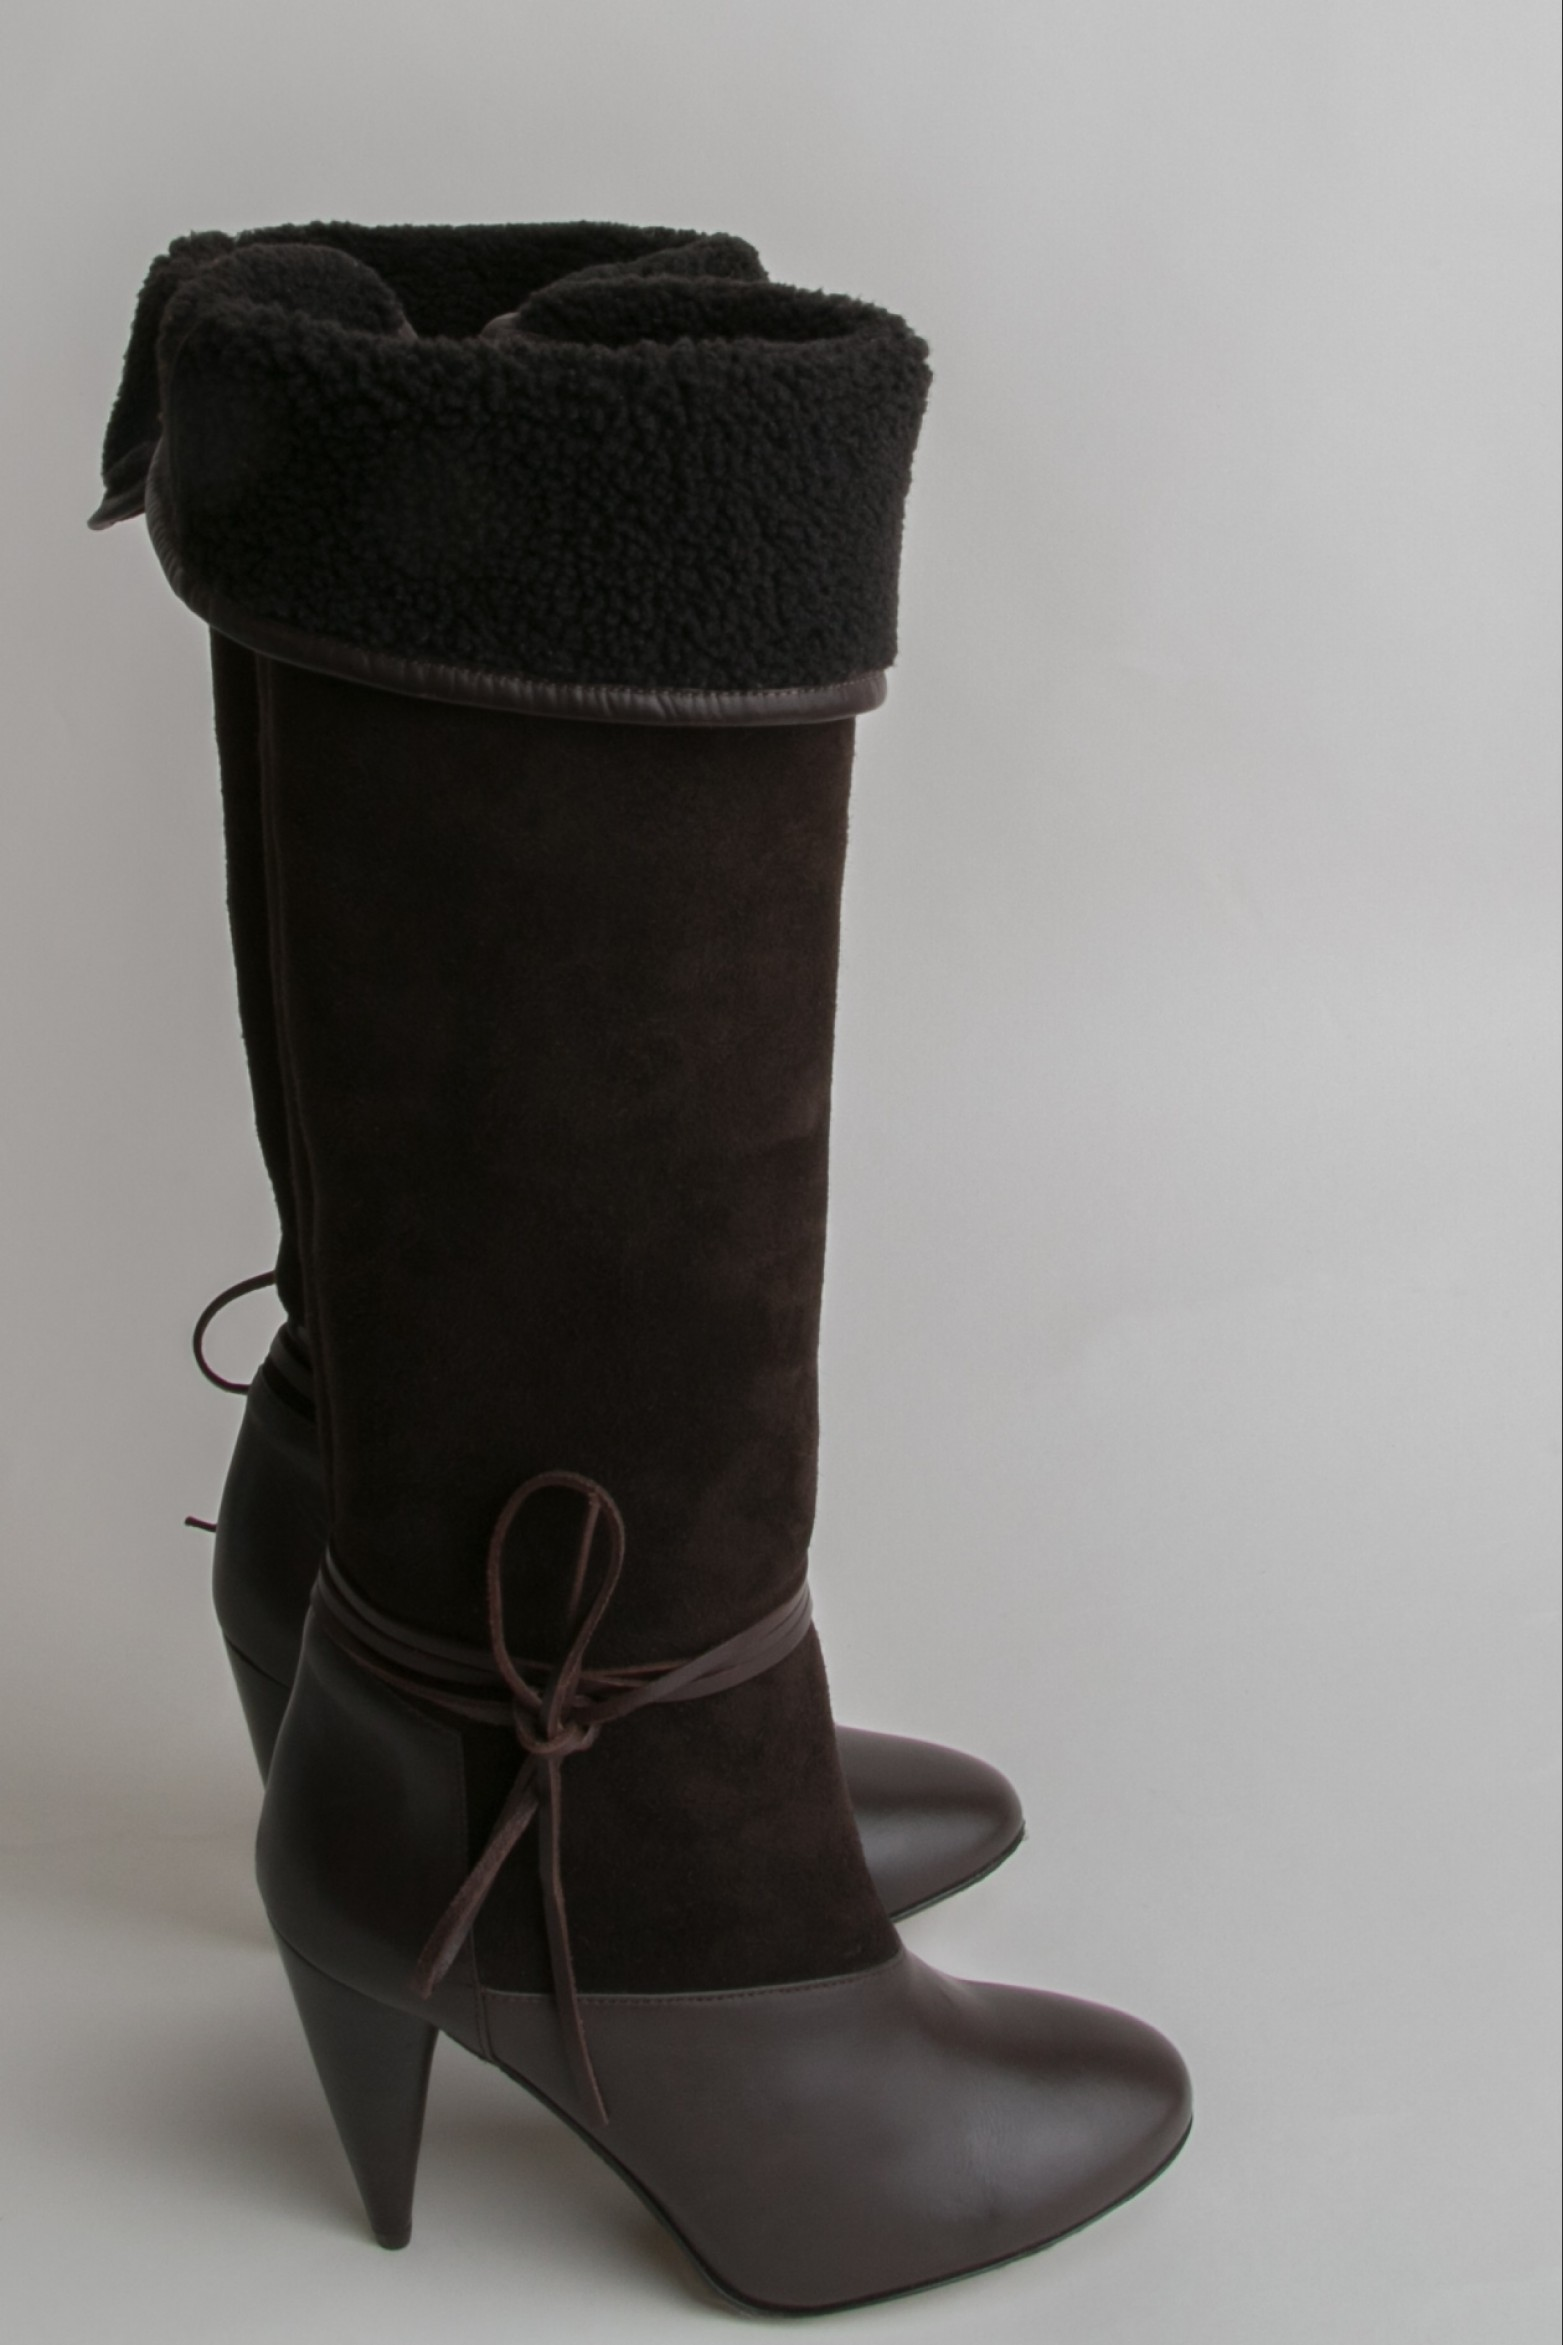 Christophe Lemaire Shearling Boots